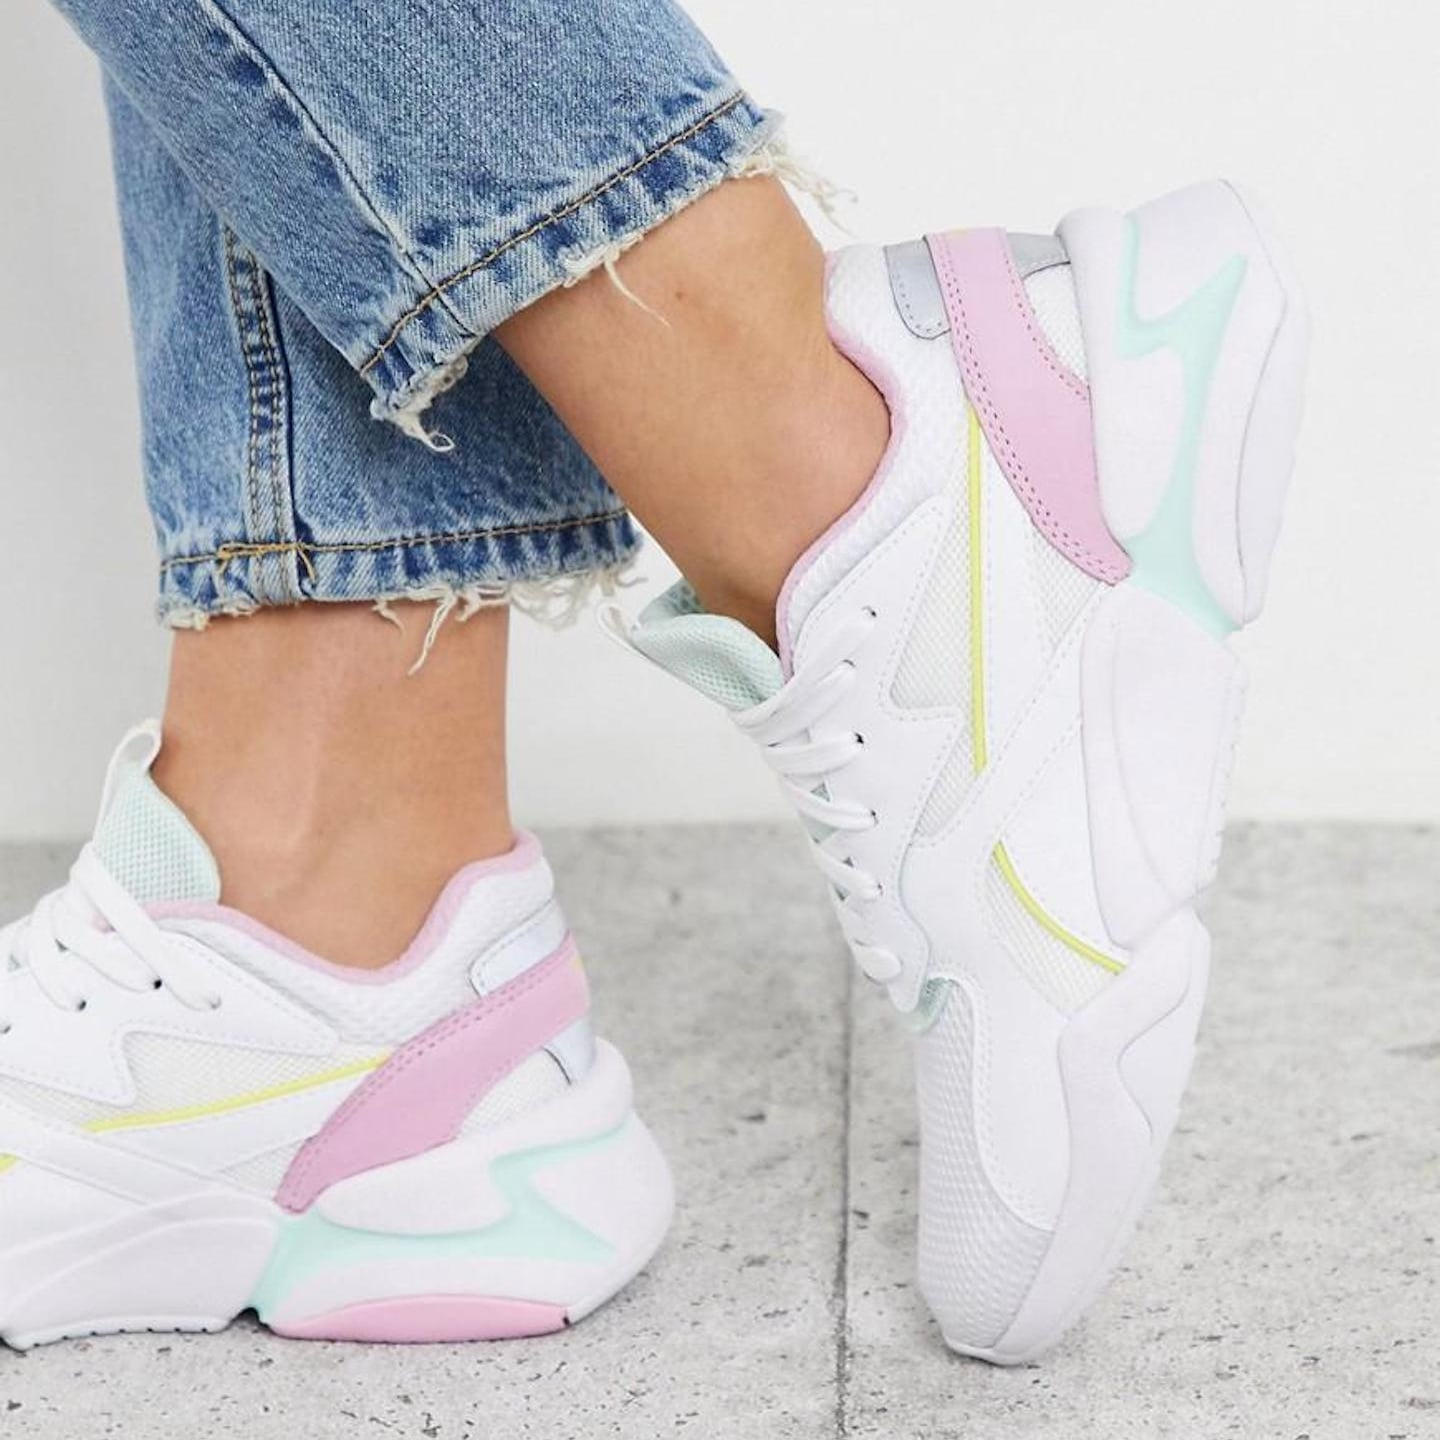 10 Most Popular Adidas Shoes For Women – Our Top Picks For 2020